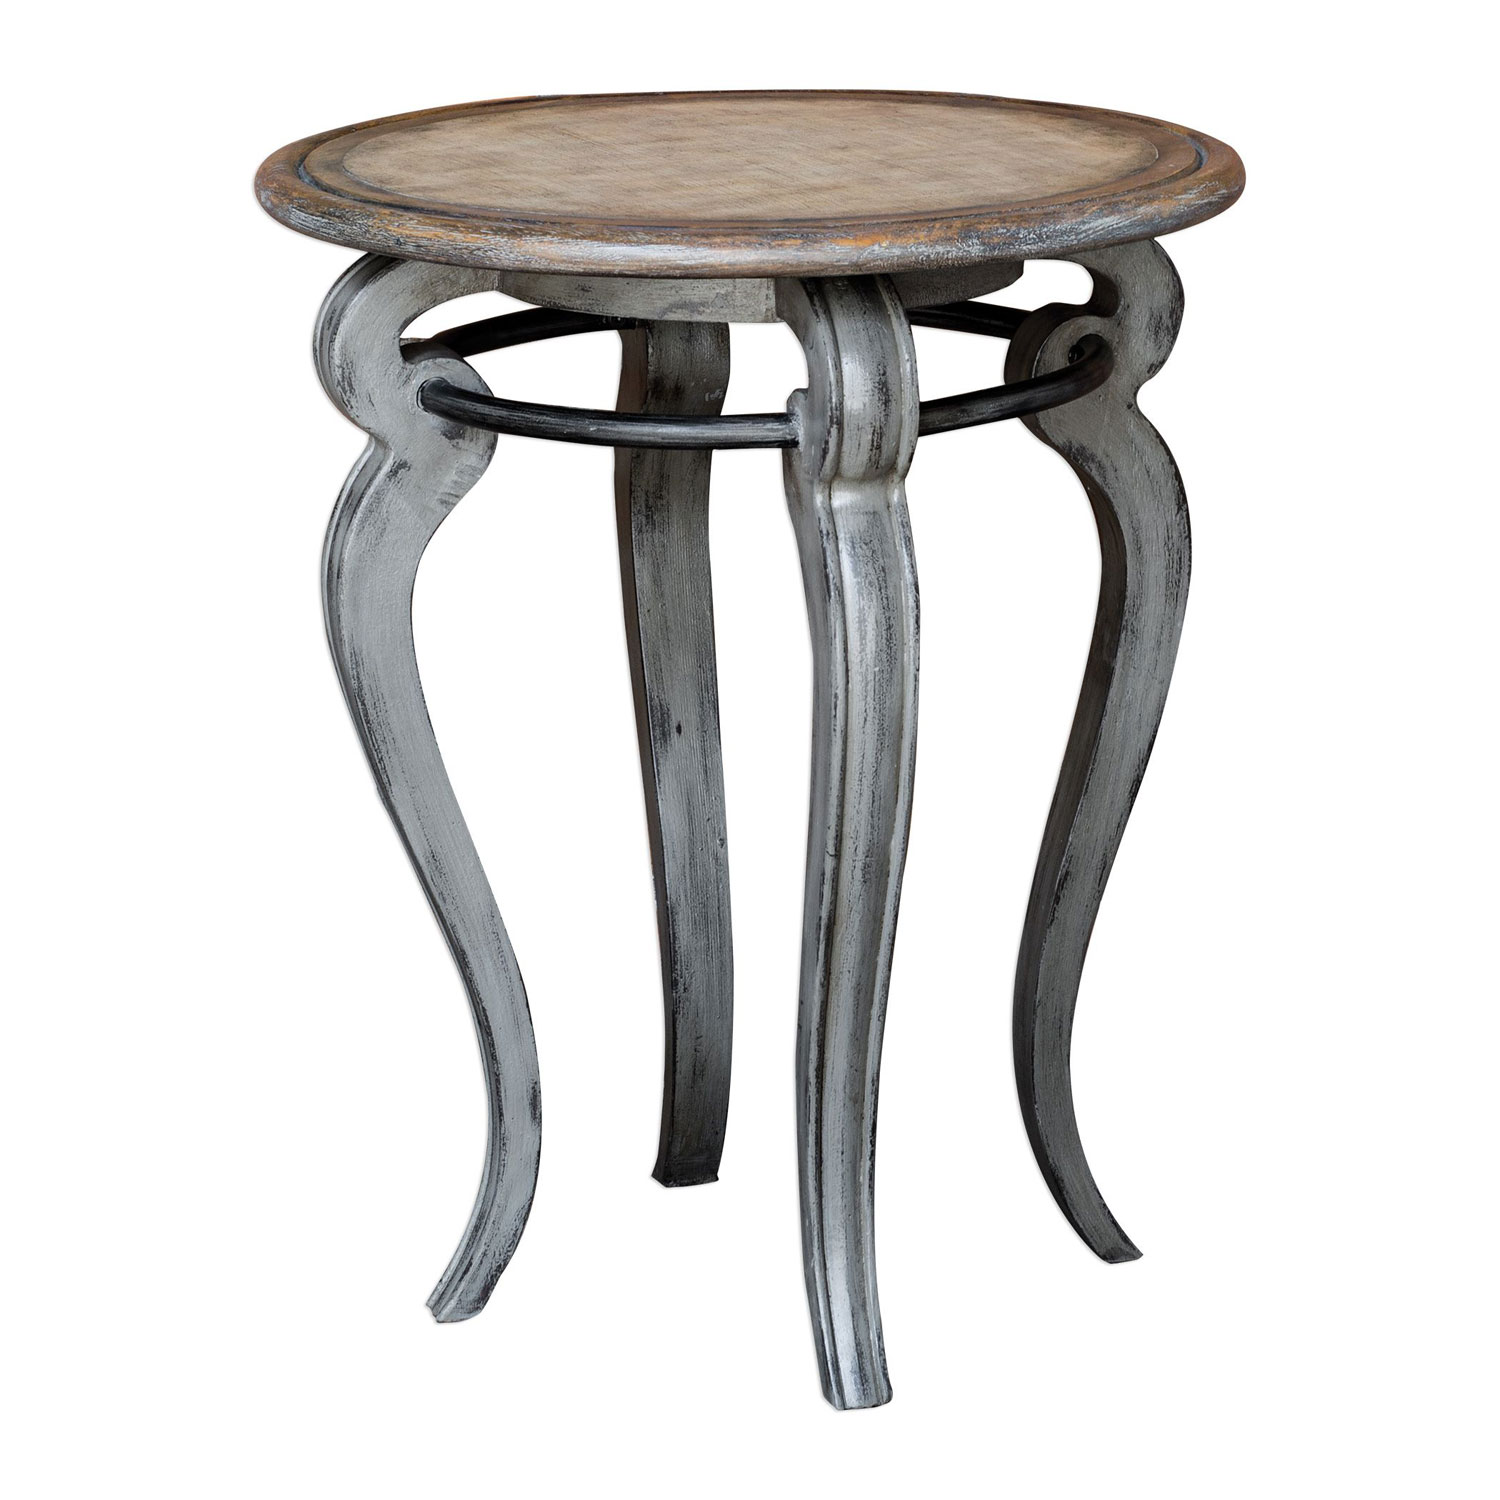 uttermost mariah round gray accent table bellacor distressed grey quatrefoil end with mirror hover zoom half outdoor setting light pink mohawk home rugs verizon ellipsis heaters